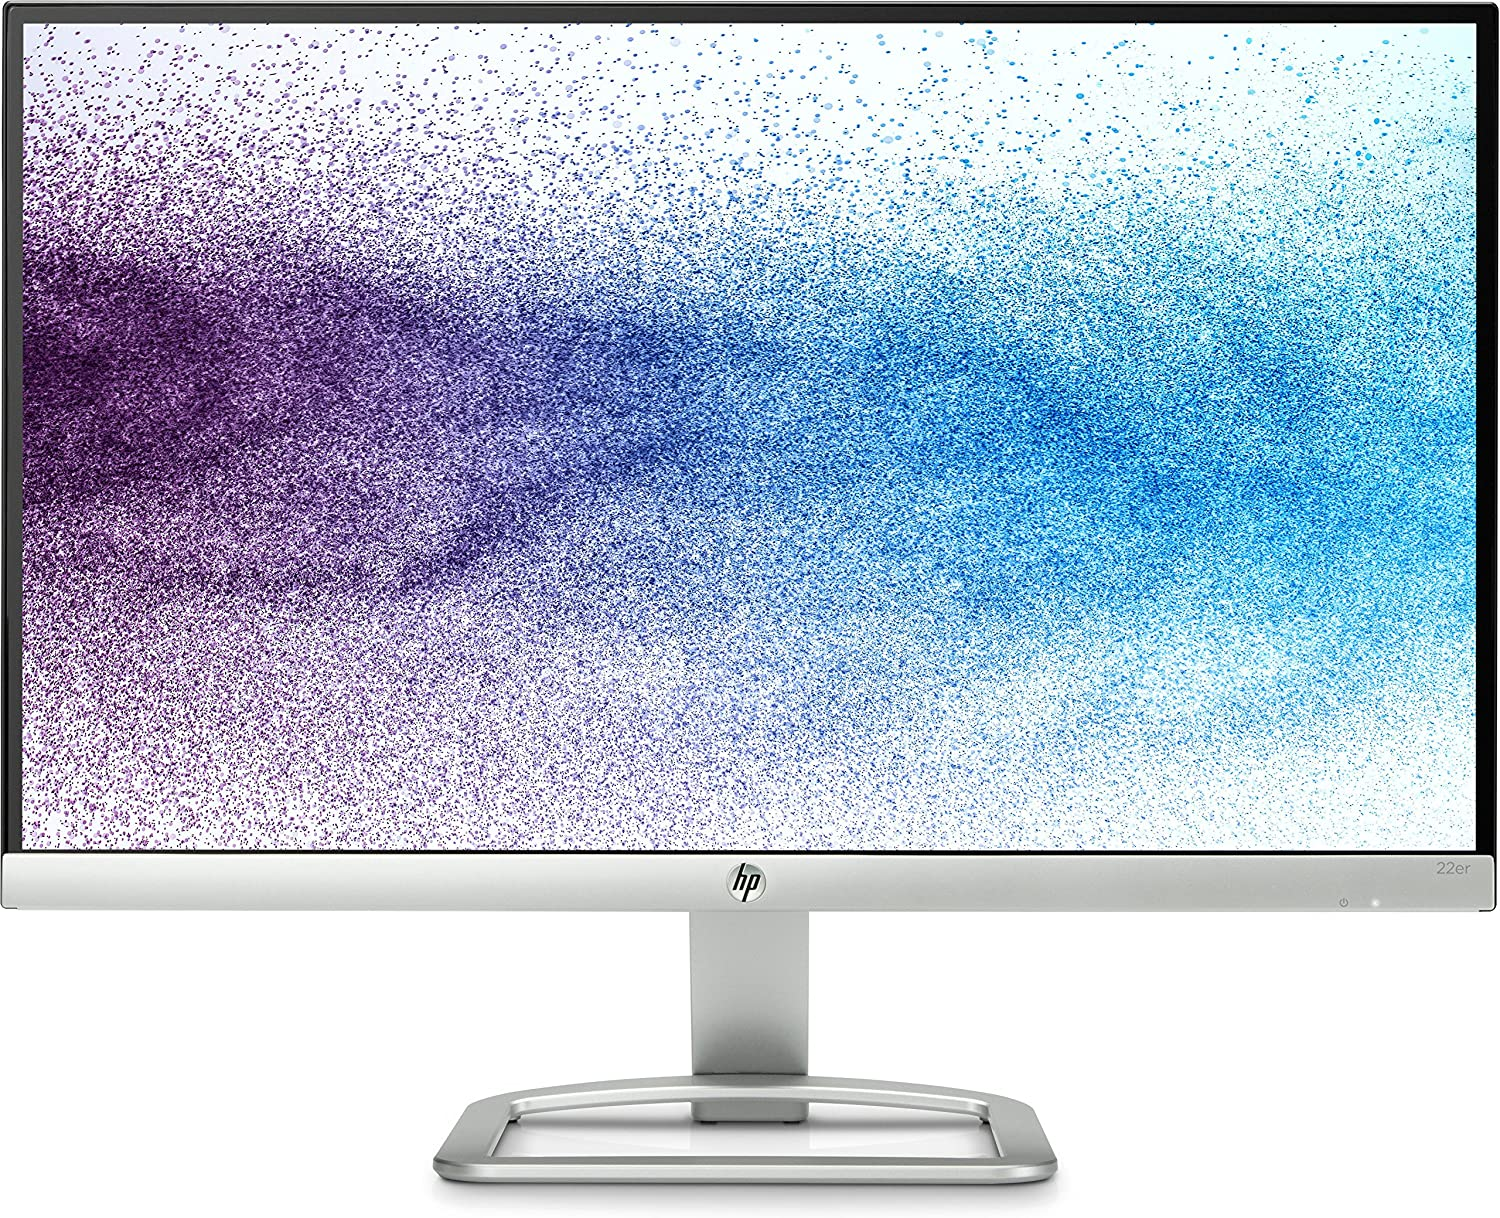 HP 22er 21.5-inch LED Backlit Monitor - T3M72AA#ABA